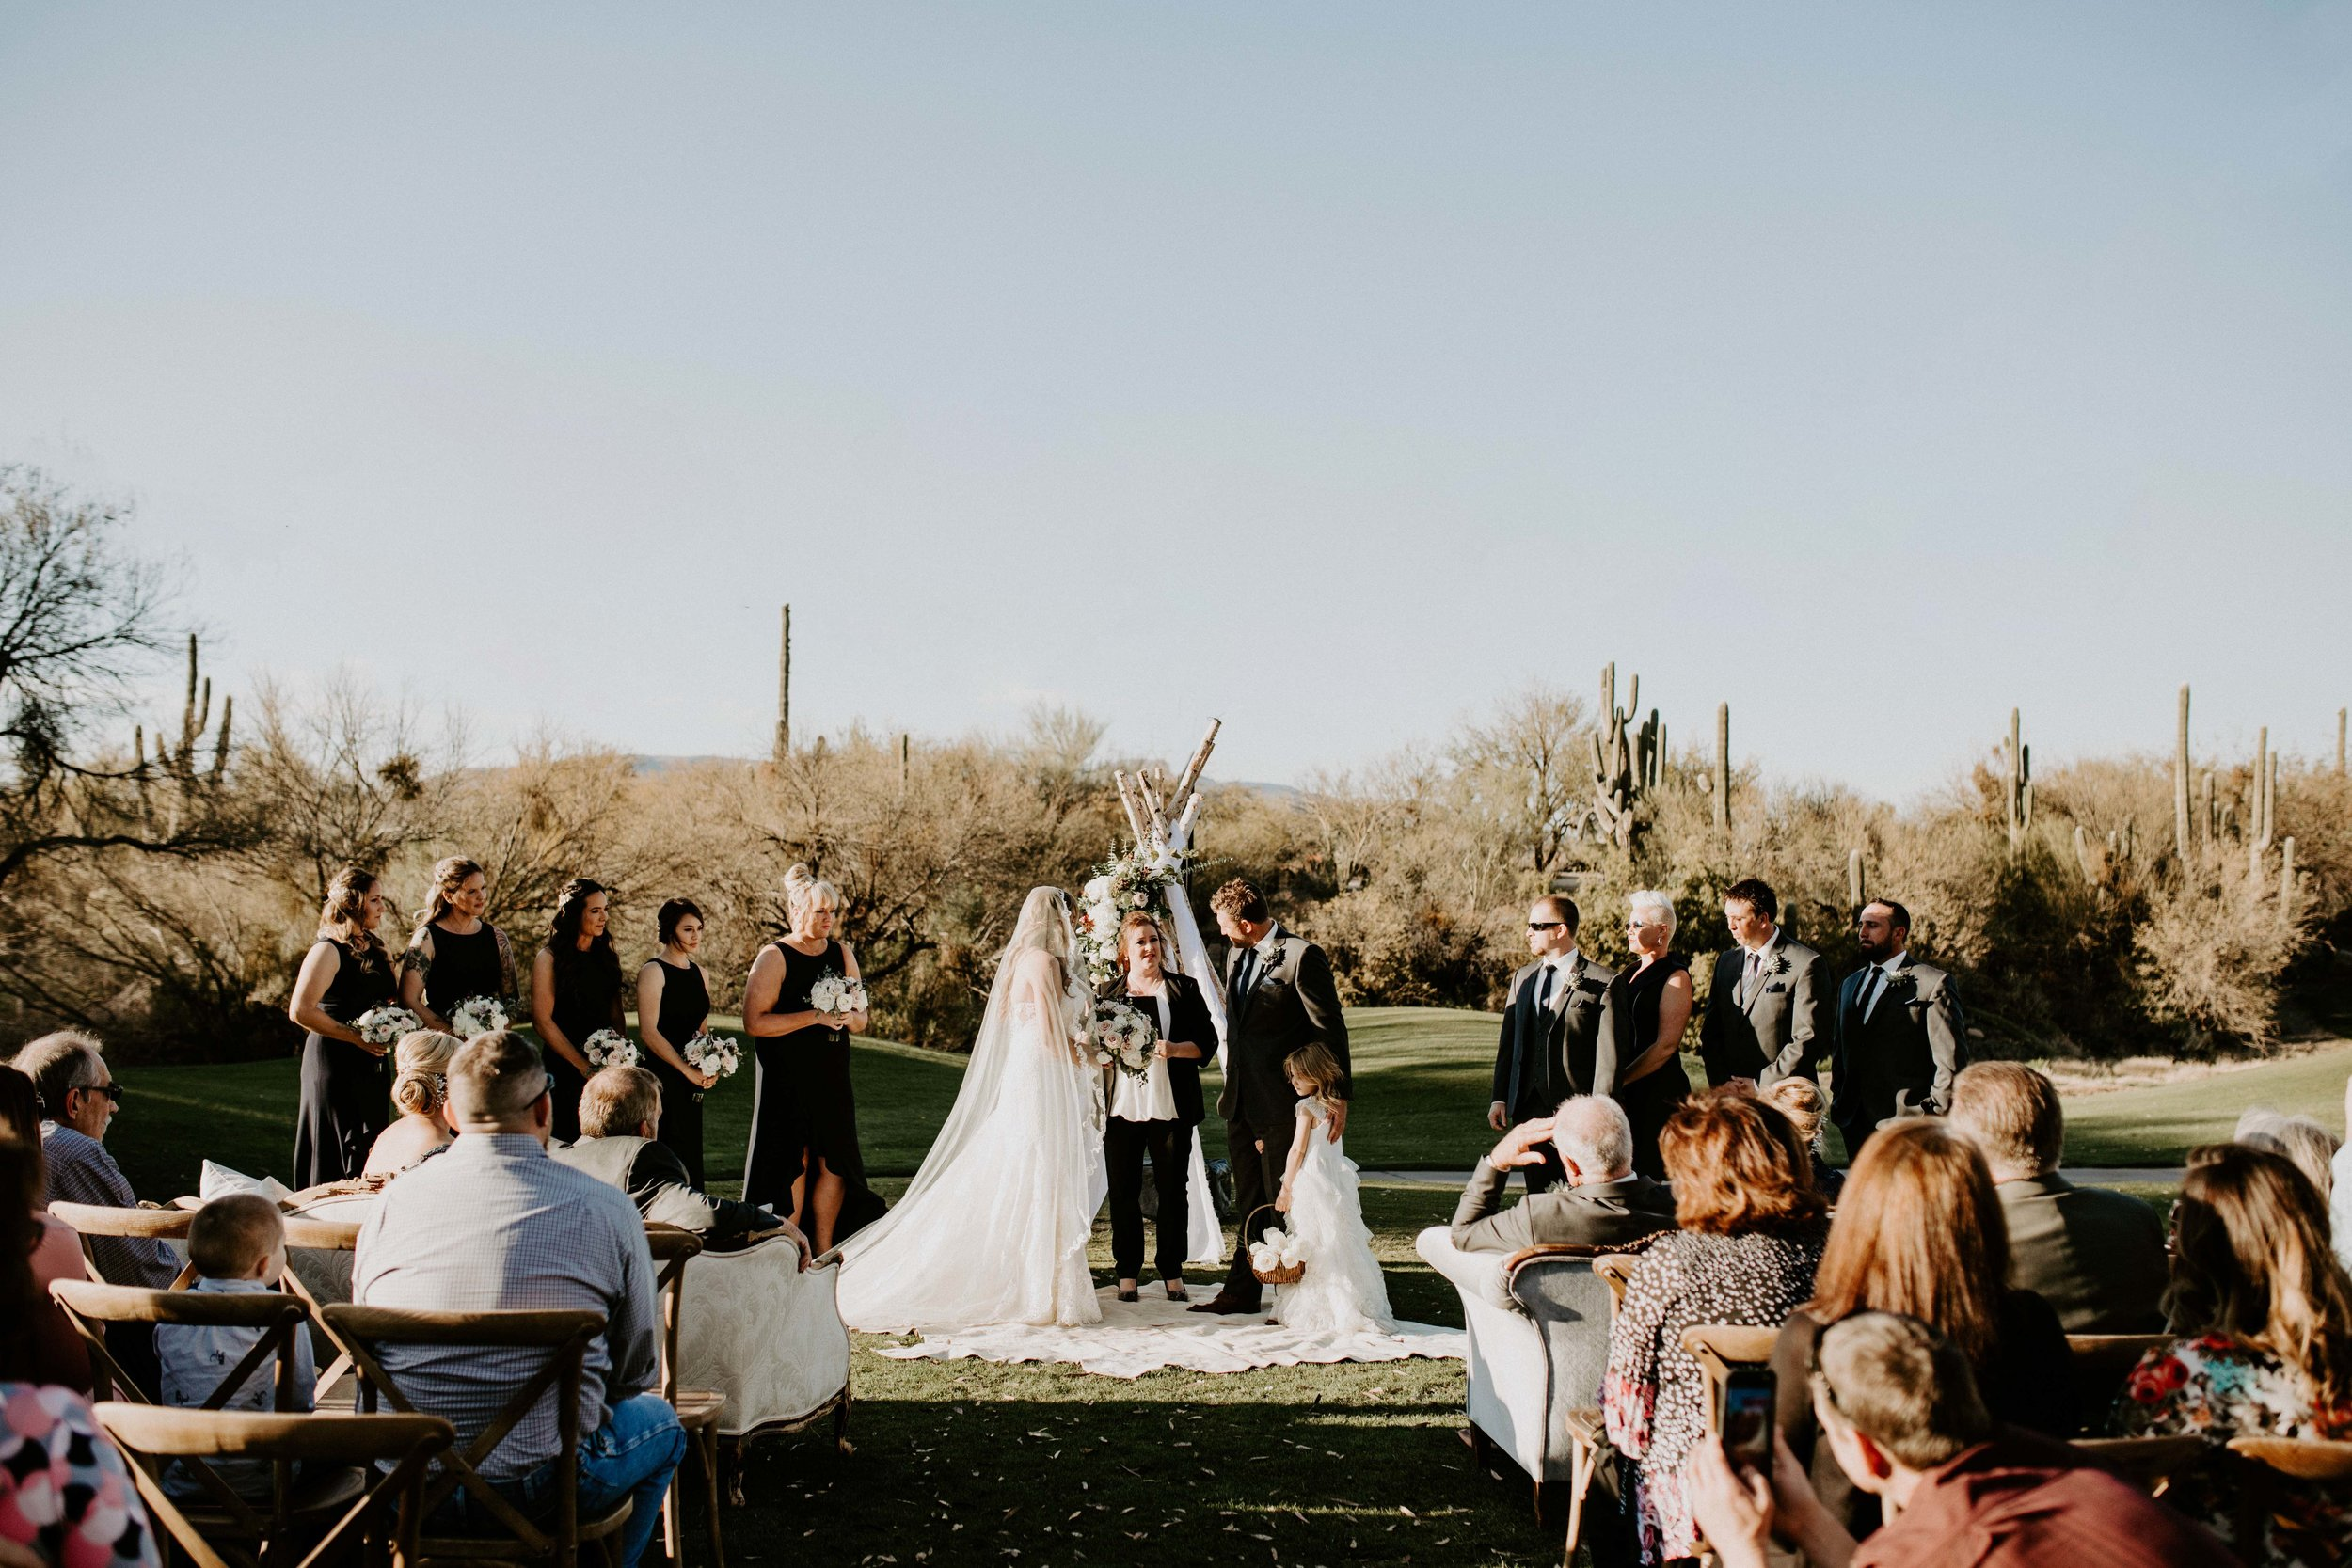 Wedding ceremony space at Tonto Bar and Grill venue in Arizona